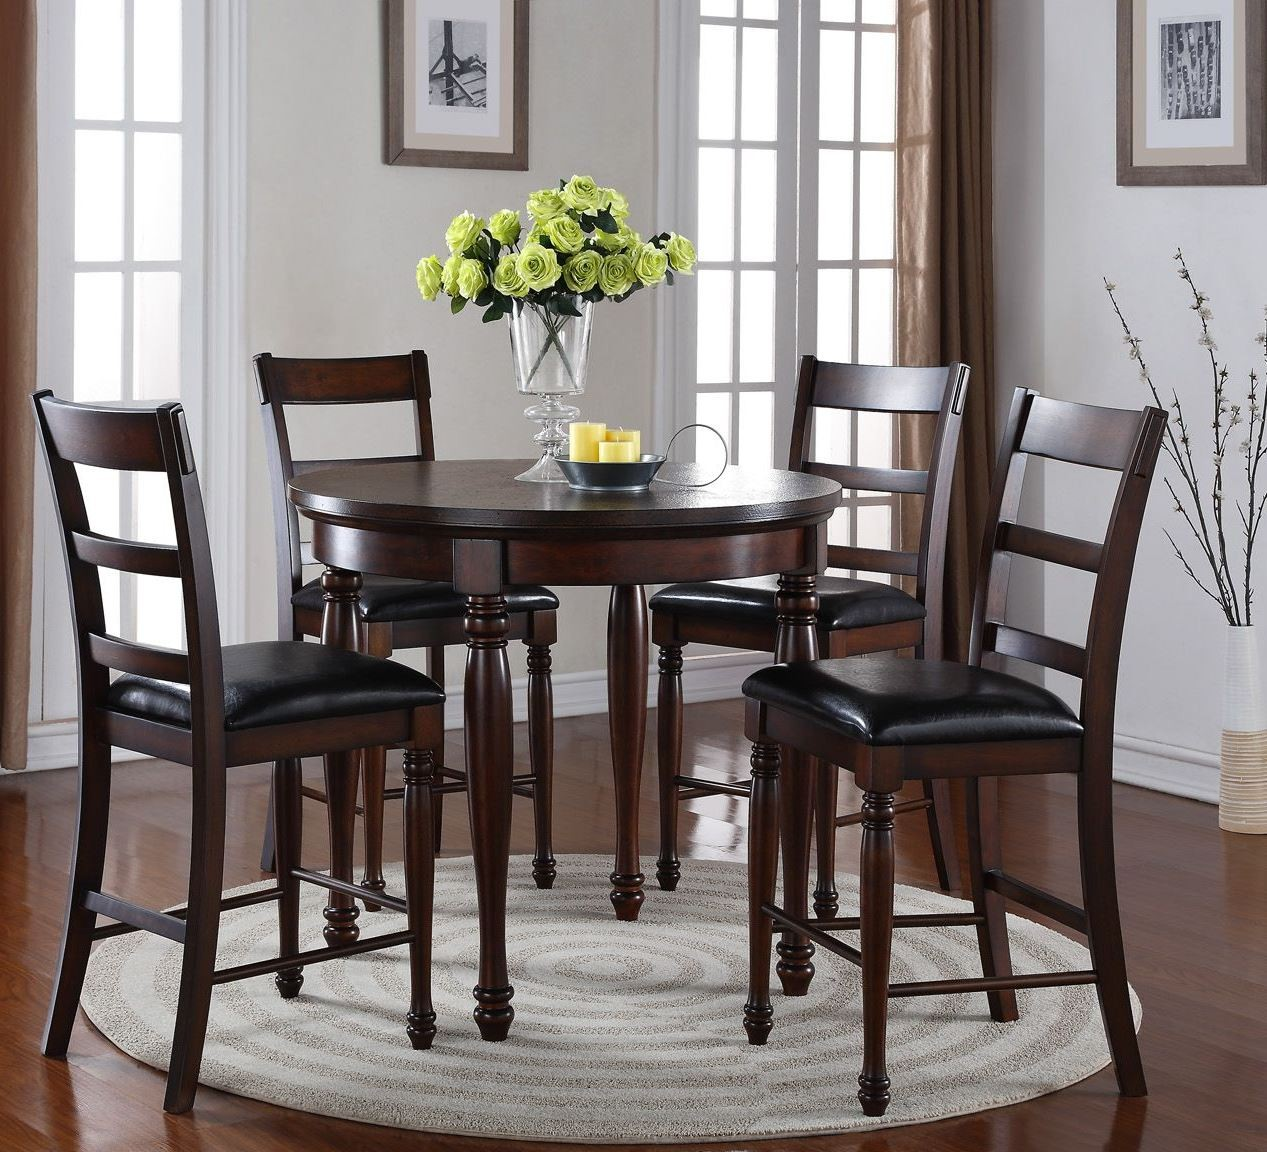 Breckenridge brown 42 round counter height dining room for Brown dining room set